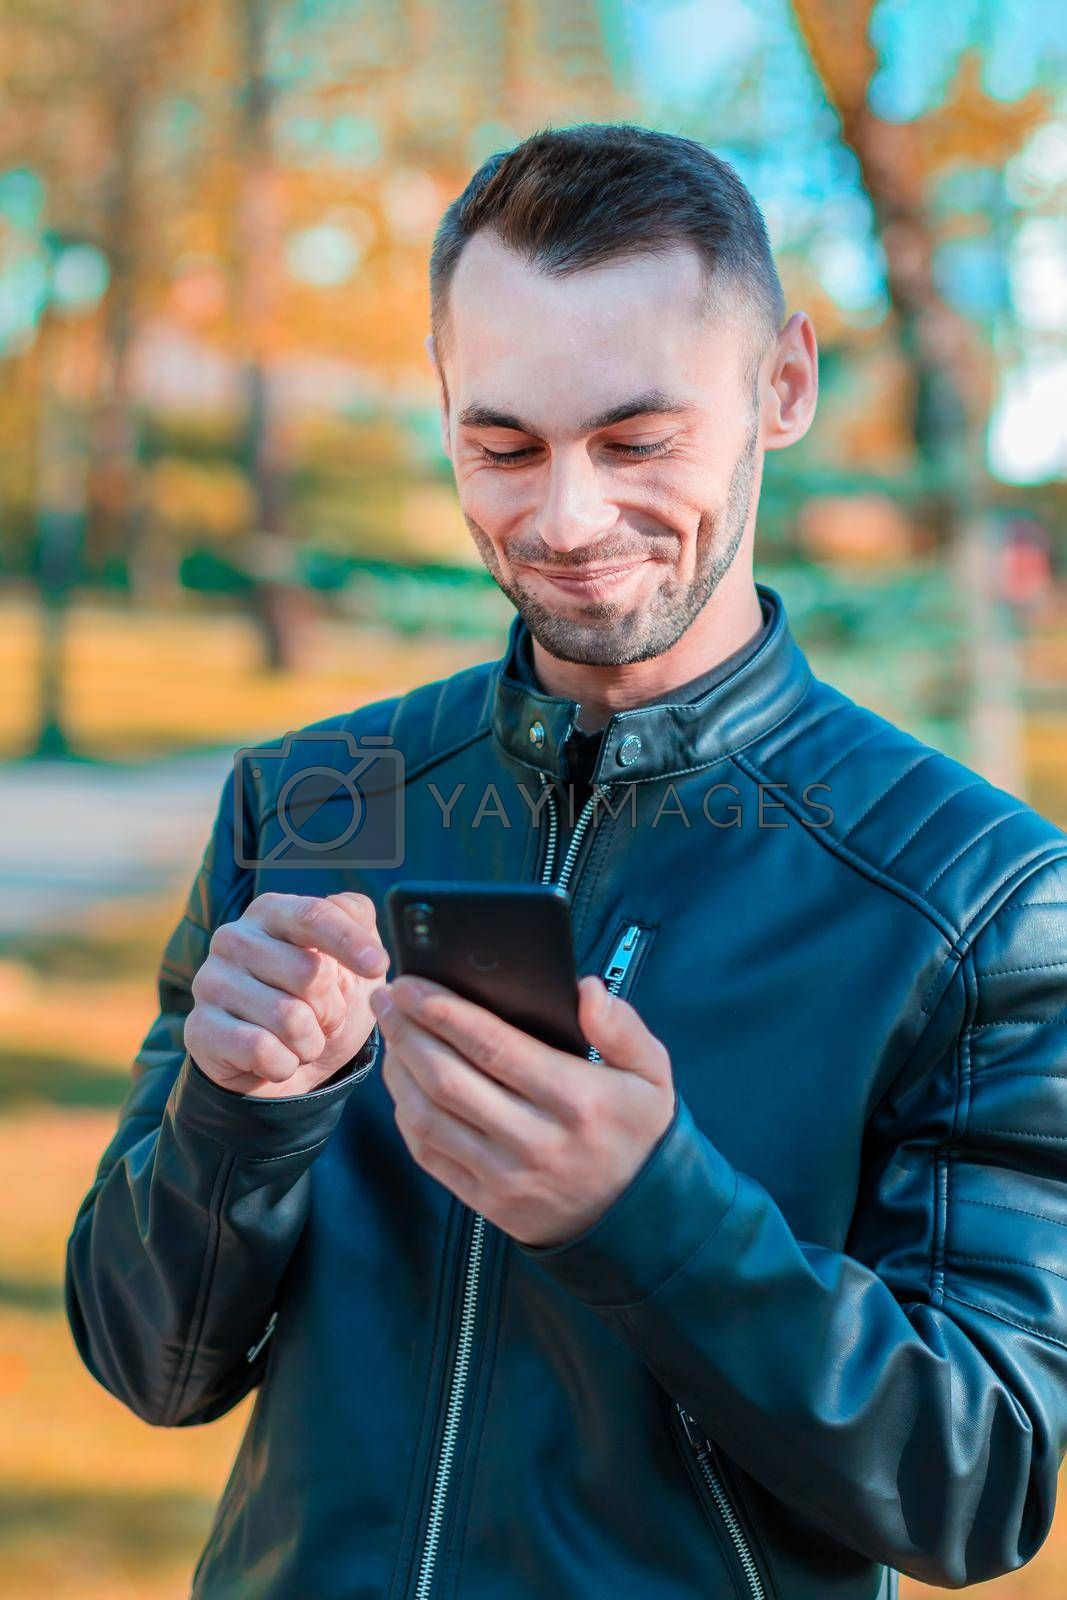 Youthful Satisfied Guy Using Black Smartphone at the Beautiful Autumn Park. Handsome Smiling Young Man with Mobile Phone at Sunny Day - Medium CloseUp Portrait